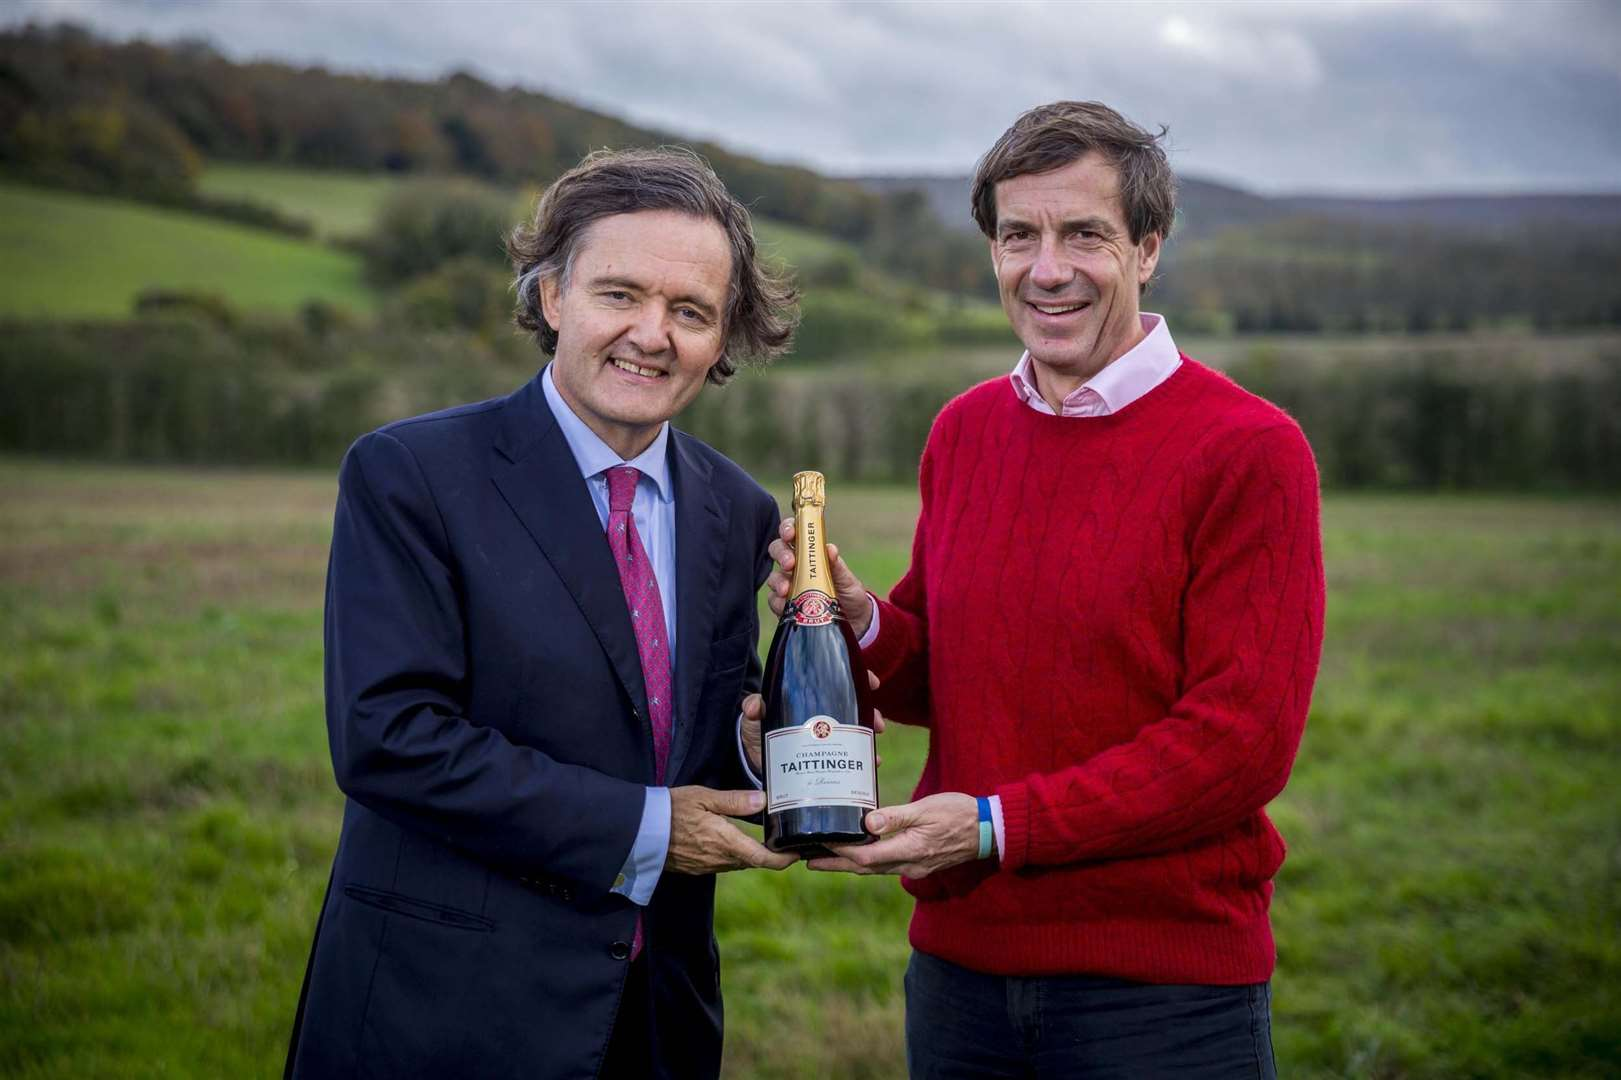 Pierre-Emmanuel Taittinger and Patrick McGrath are working in partnership to deliver the Domaine Évremond winery. Picture: Thomas Alexander